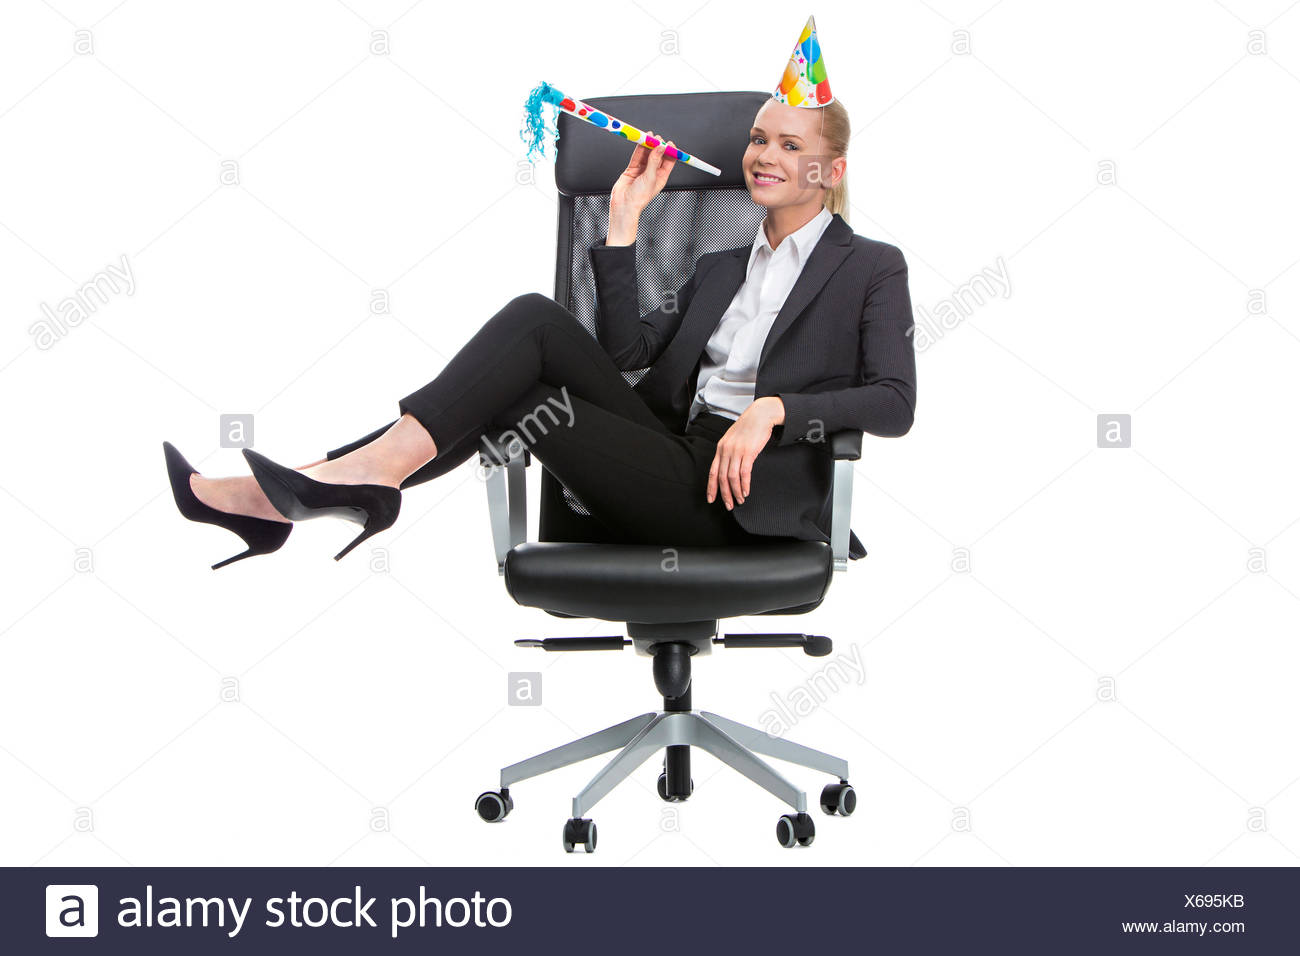 woman gesture humans human beings people folk persons human human being office laugh laughs laughing twit giggle smile smiling - Stock Image